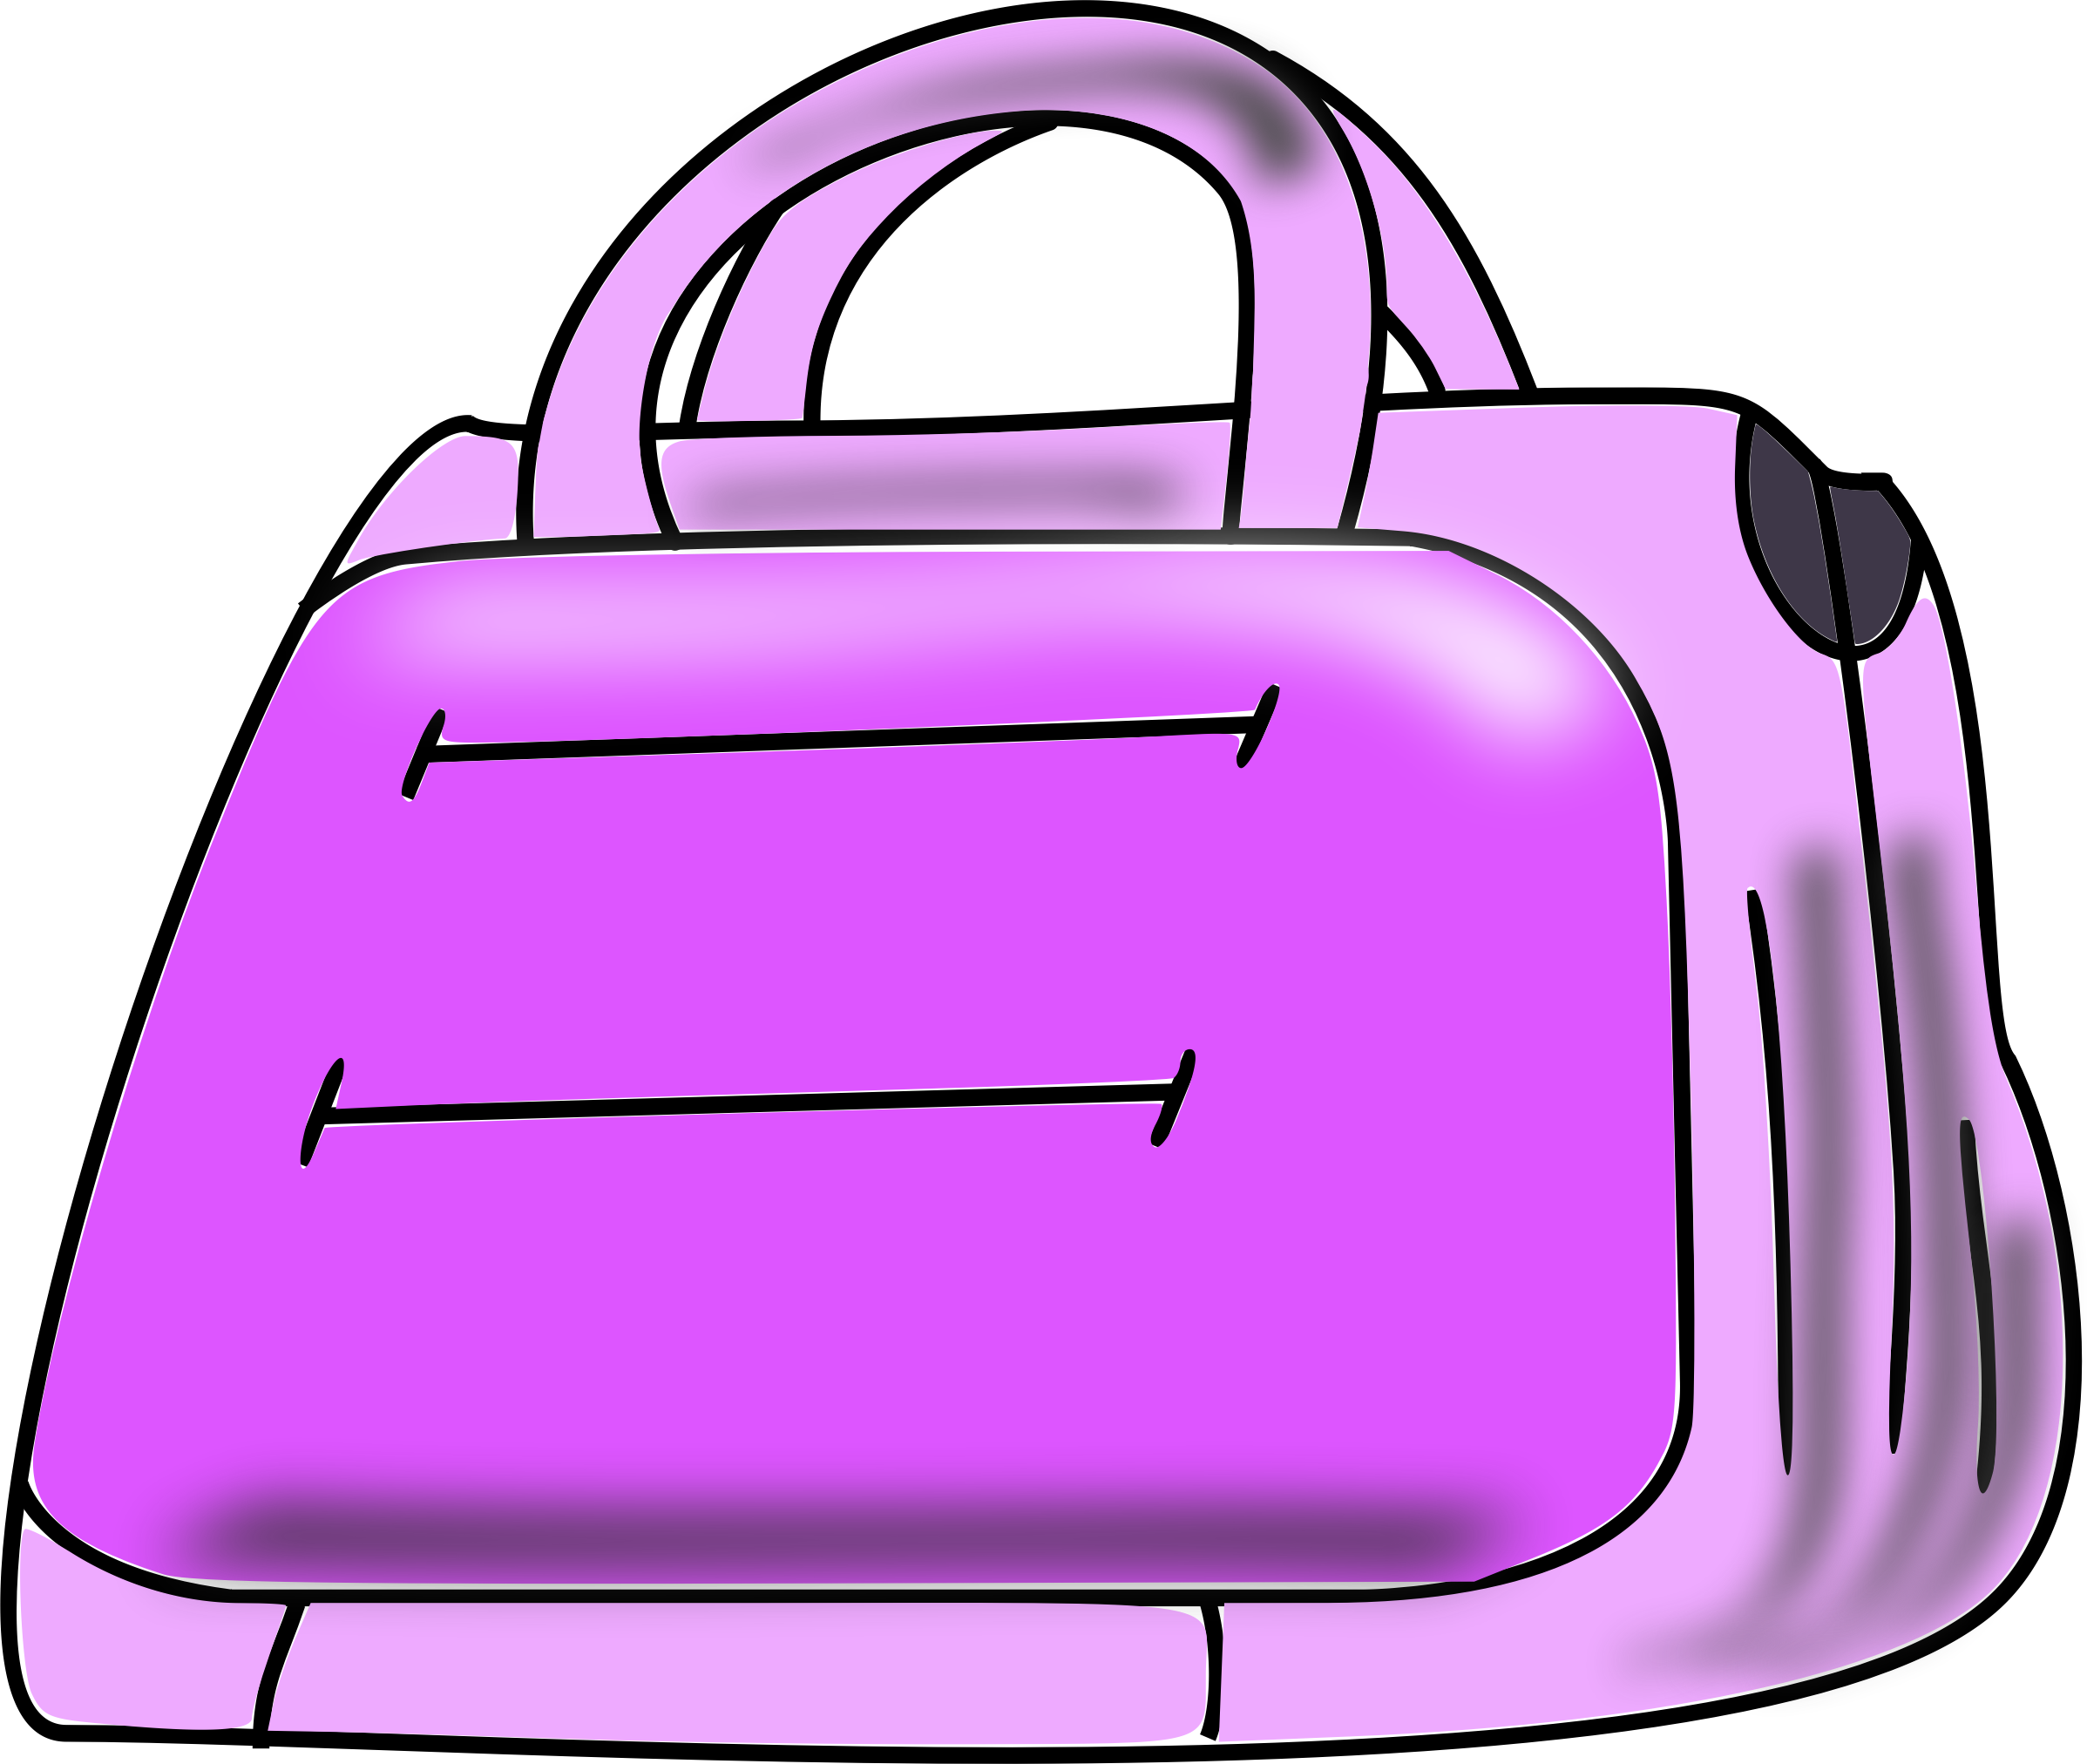 handbag by cprostire